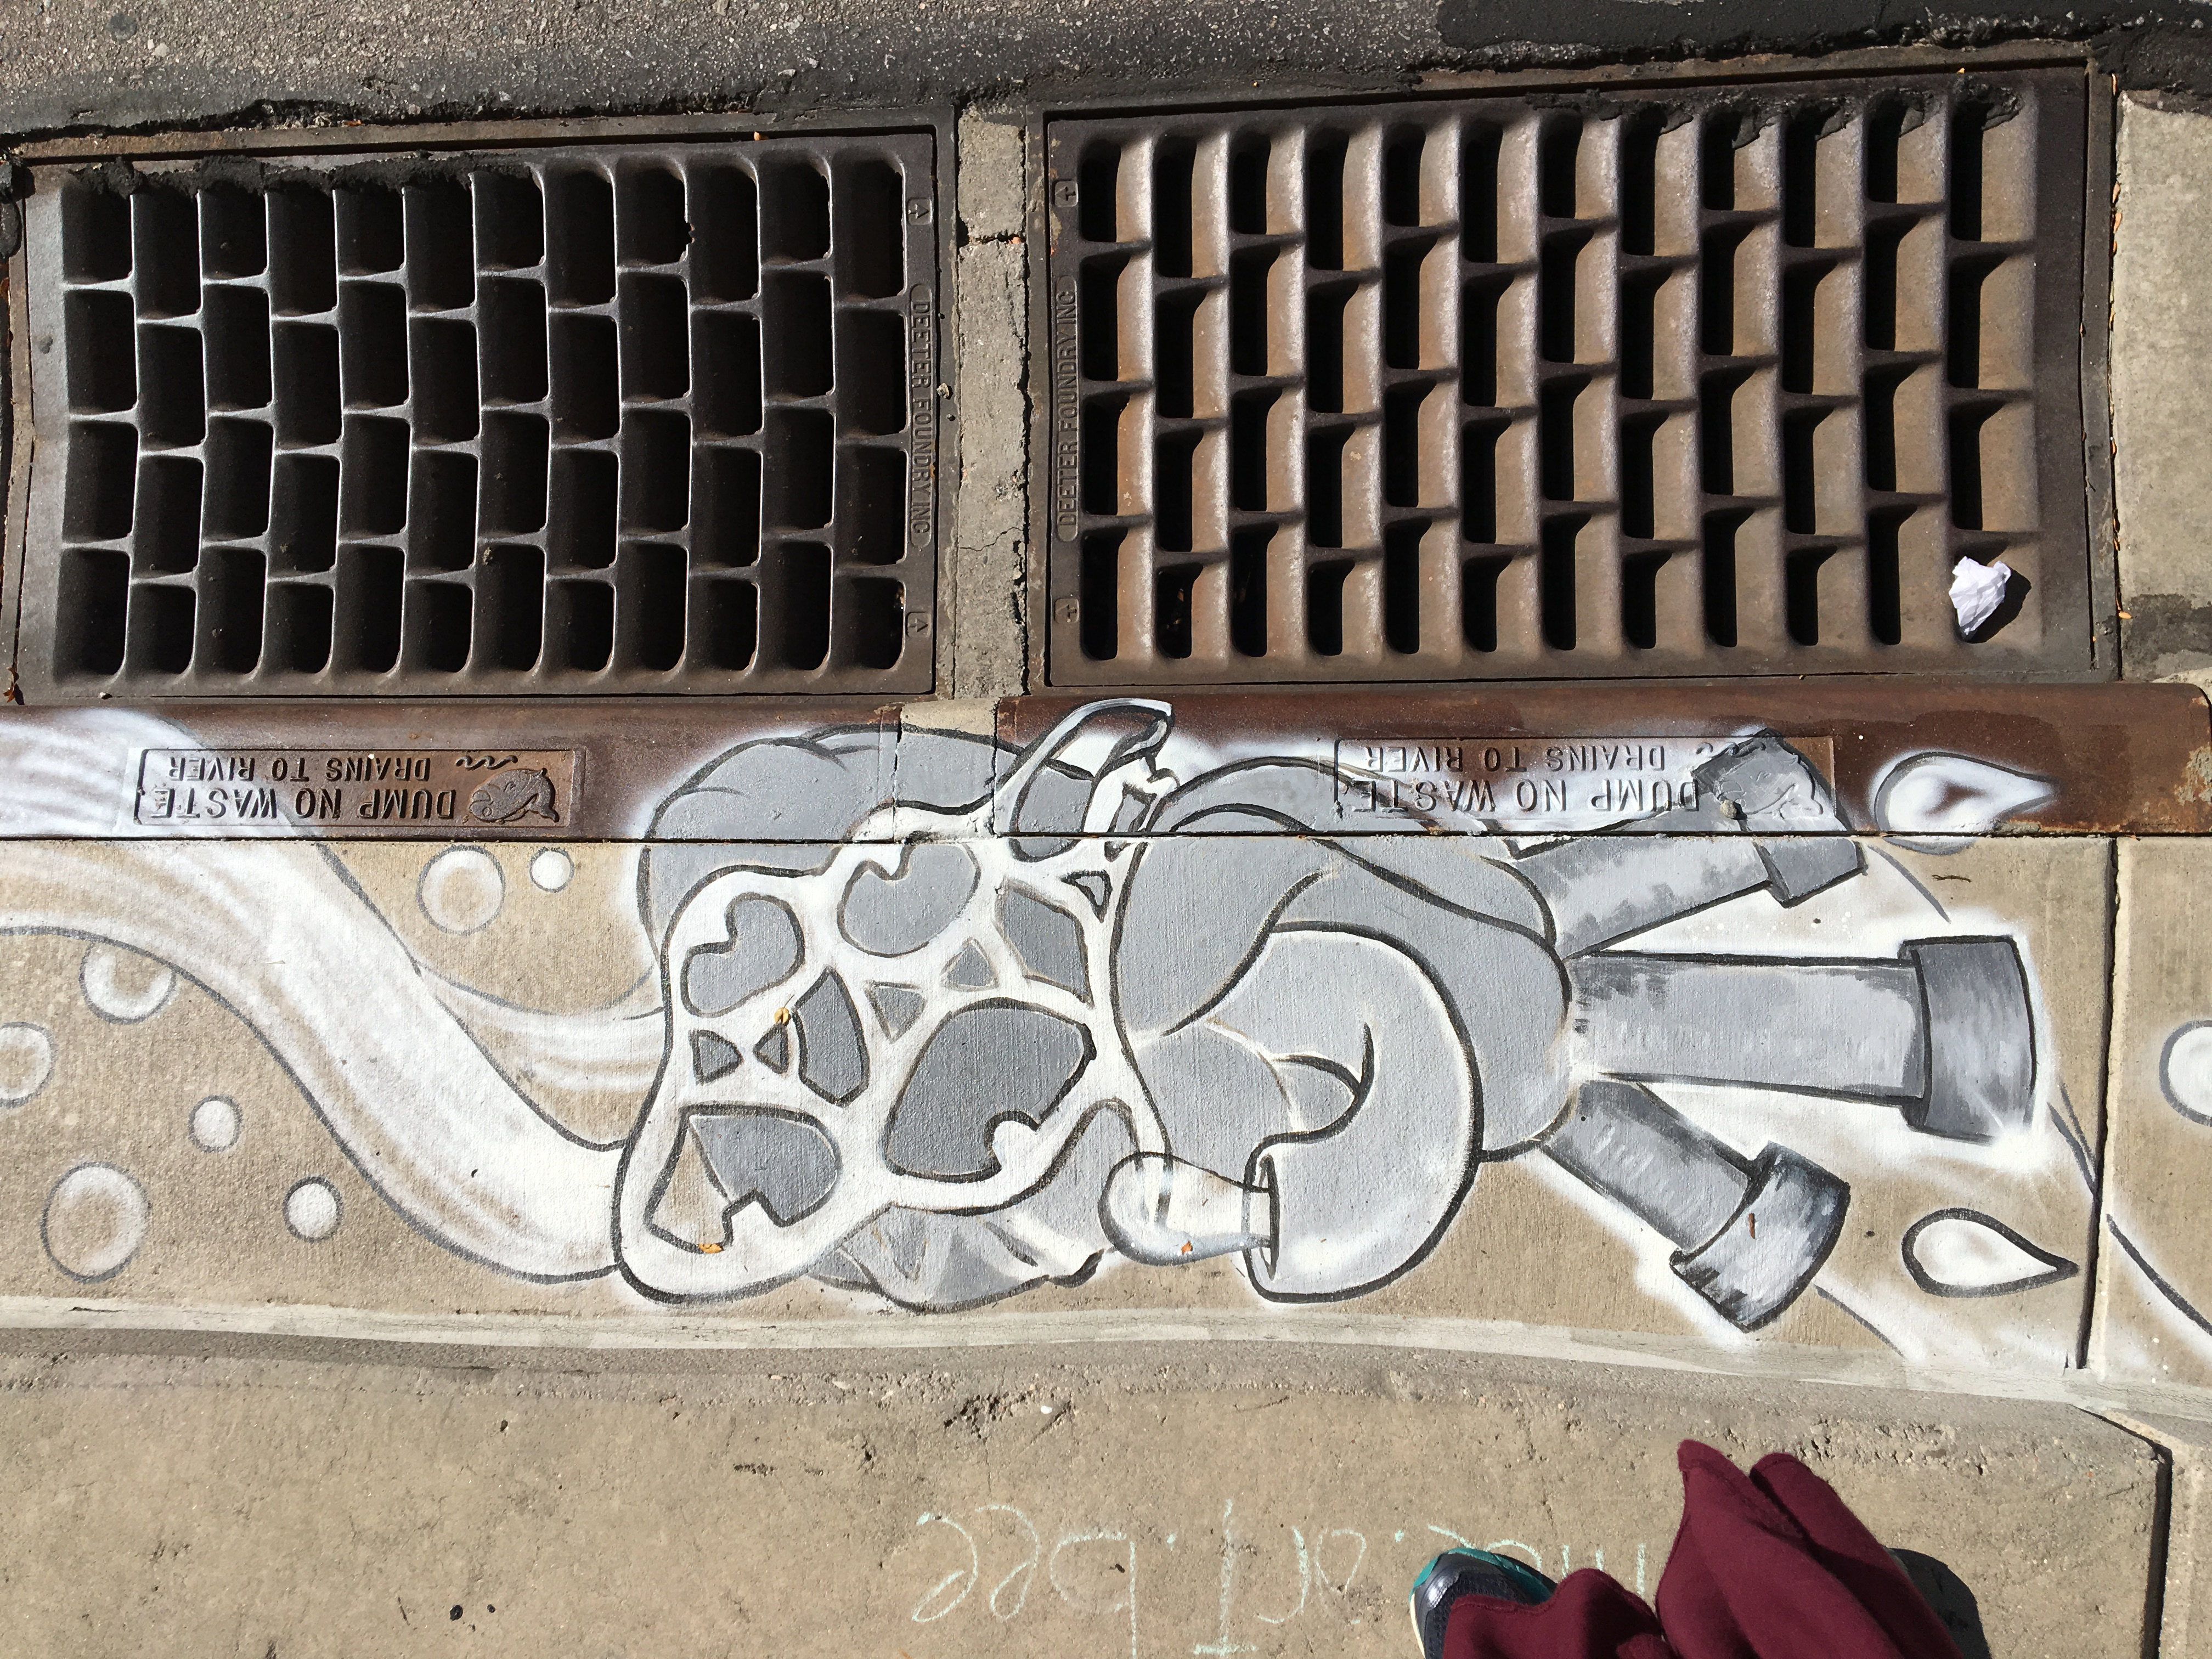 Painting of pollution going down storm drain and into water